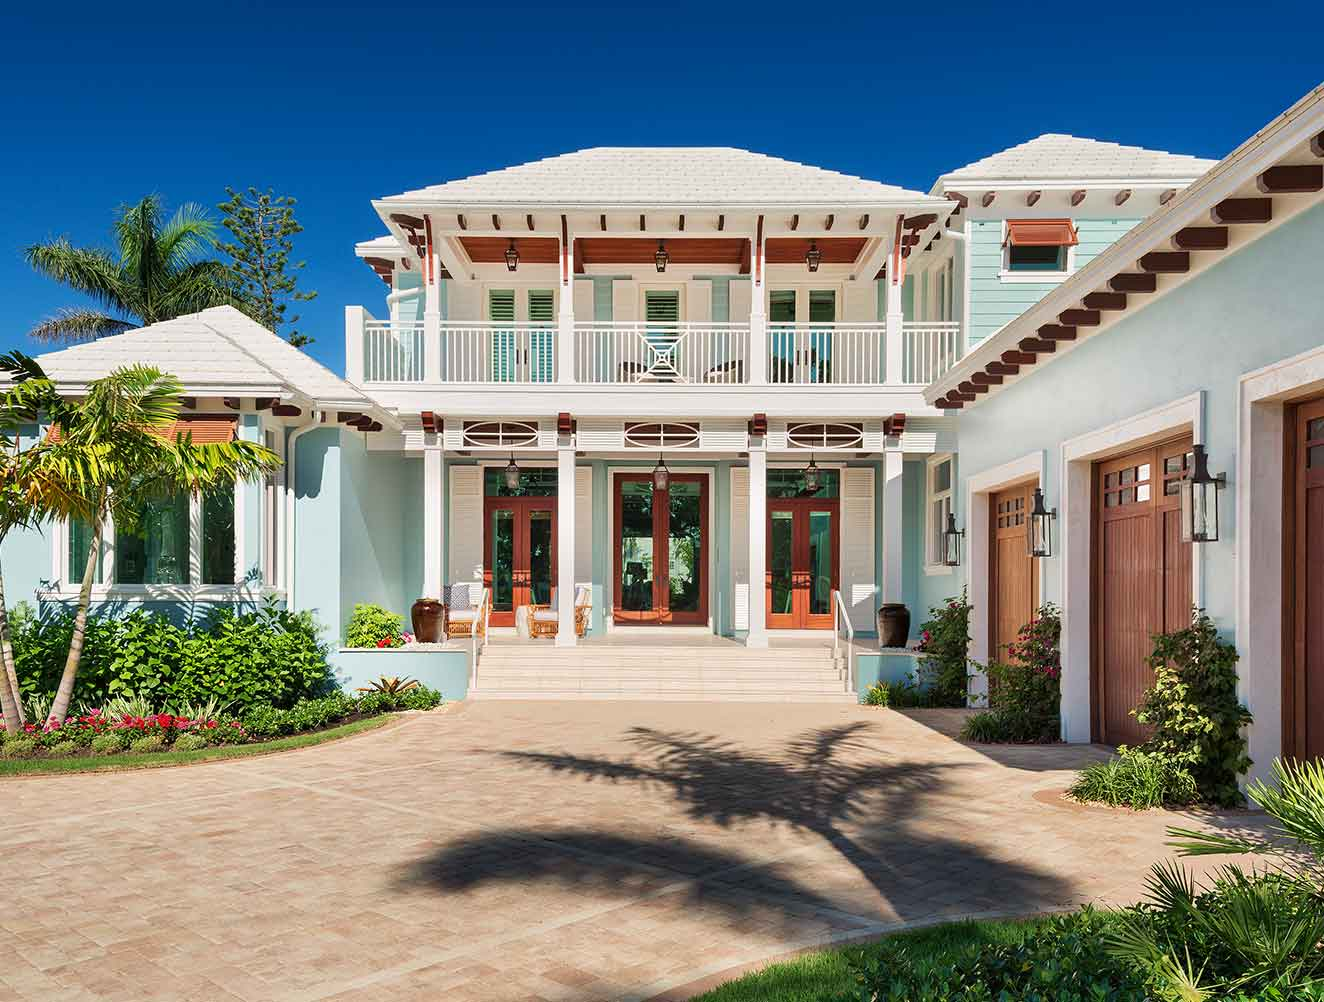 Residence Entry & Architectural Features at West Indies Residence in Naples Florida, single family home designed by Kukk Architecture & Design Naples Architecture Firm